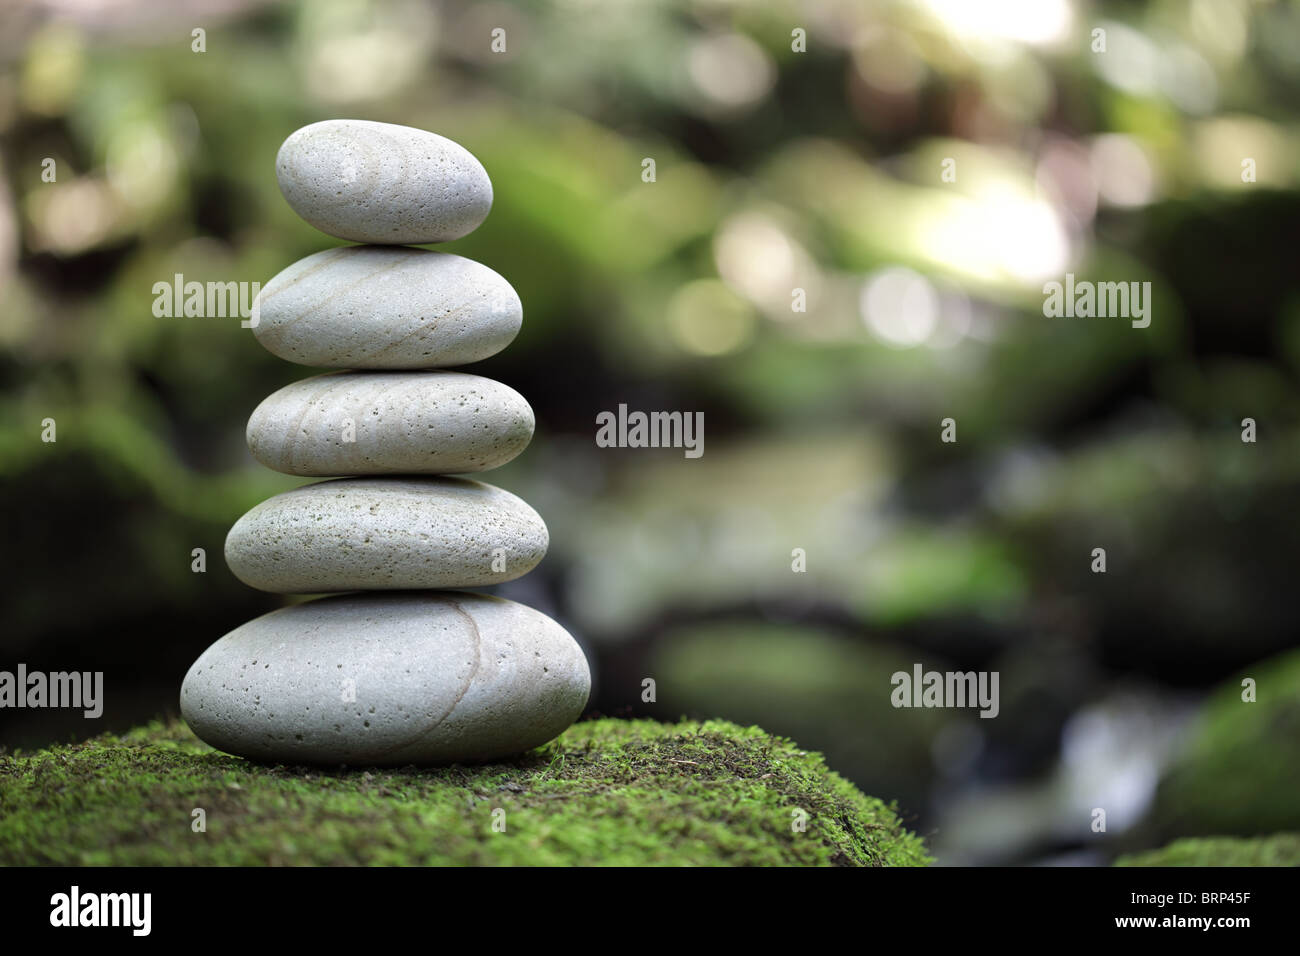 Balance and harmony in nature - Stock Image